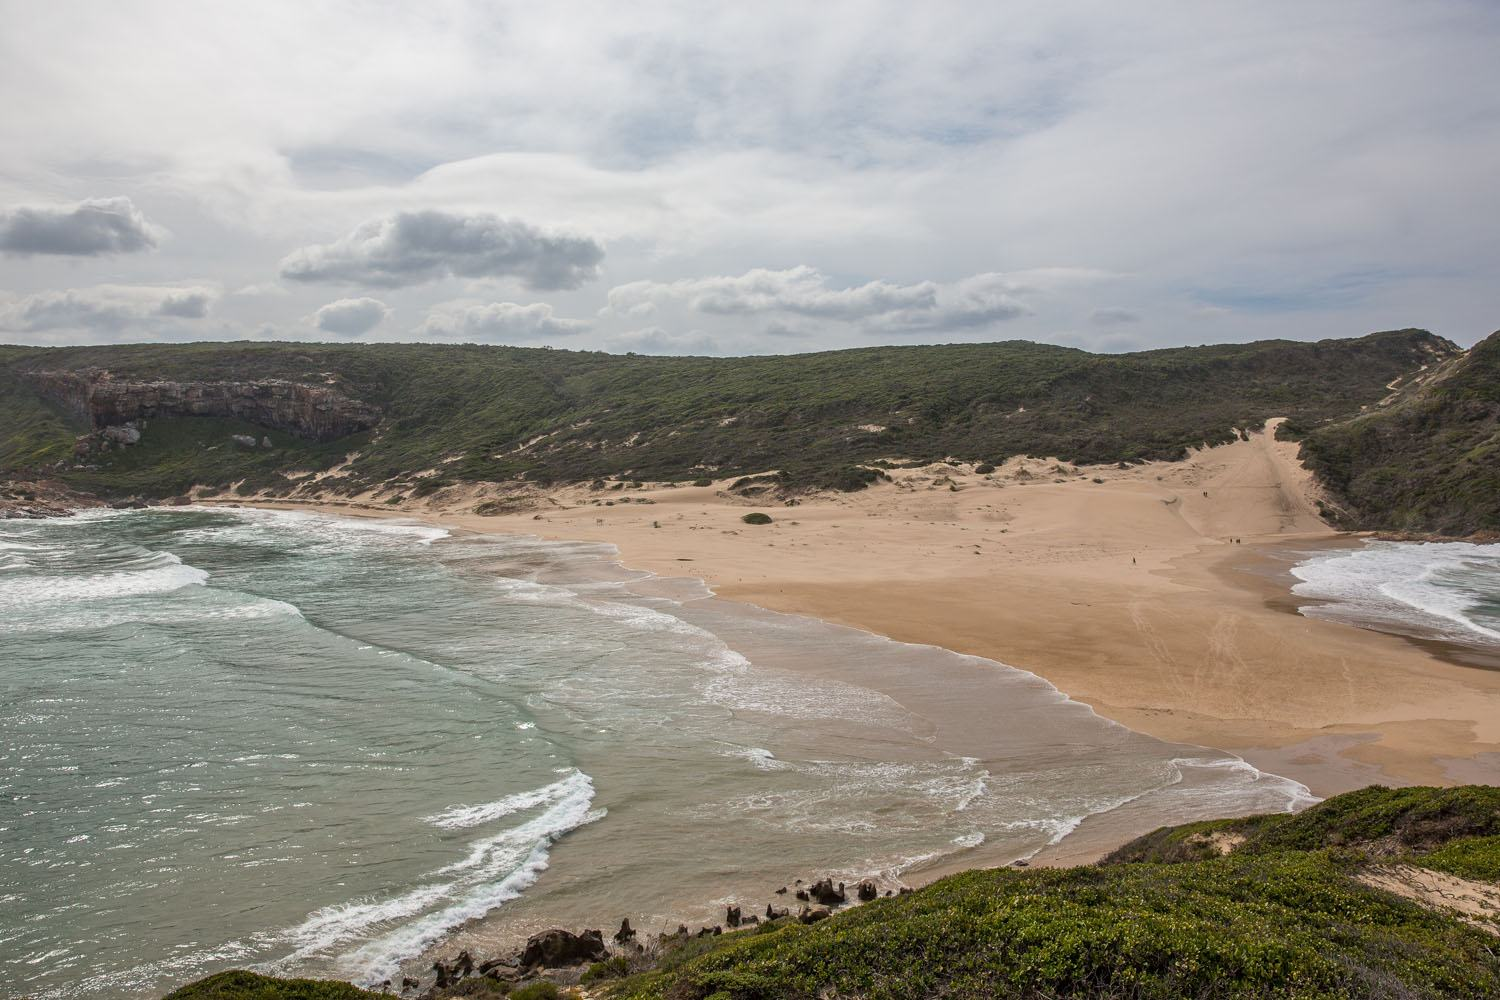 The beach on Robberg